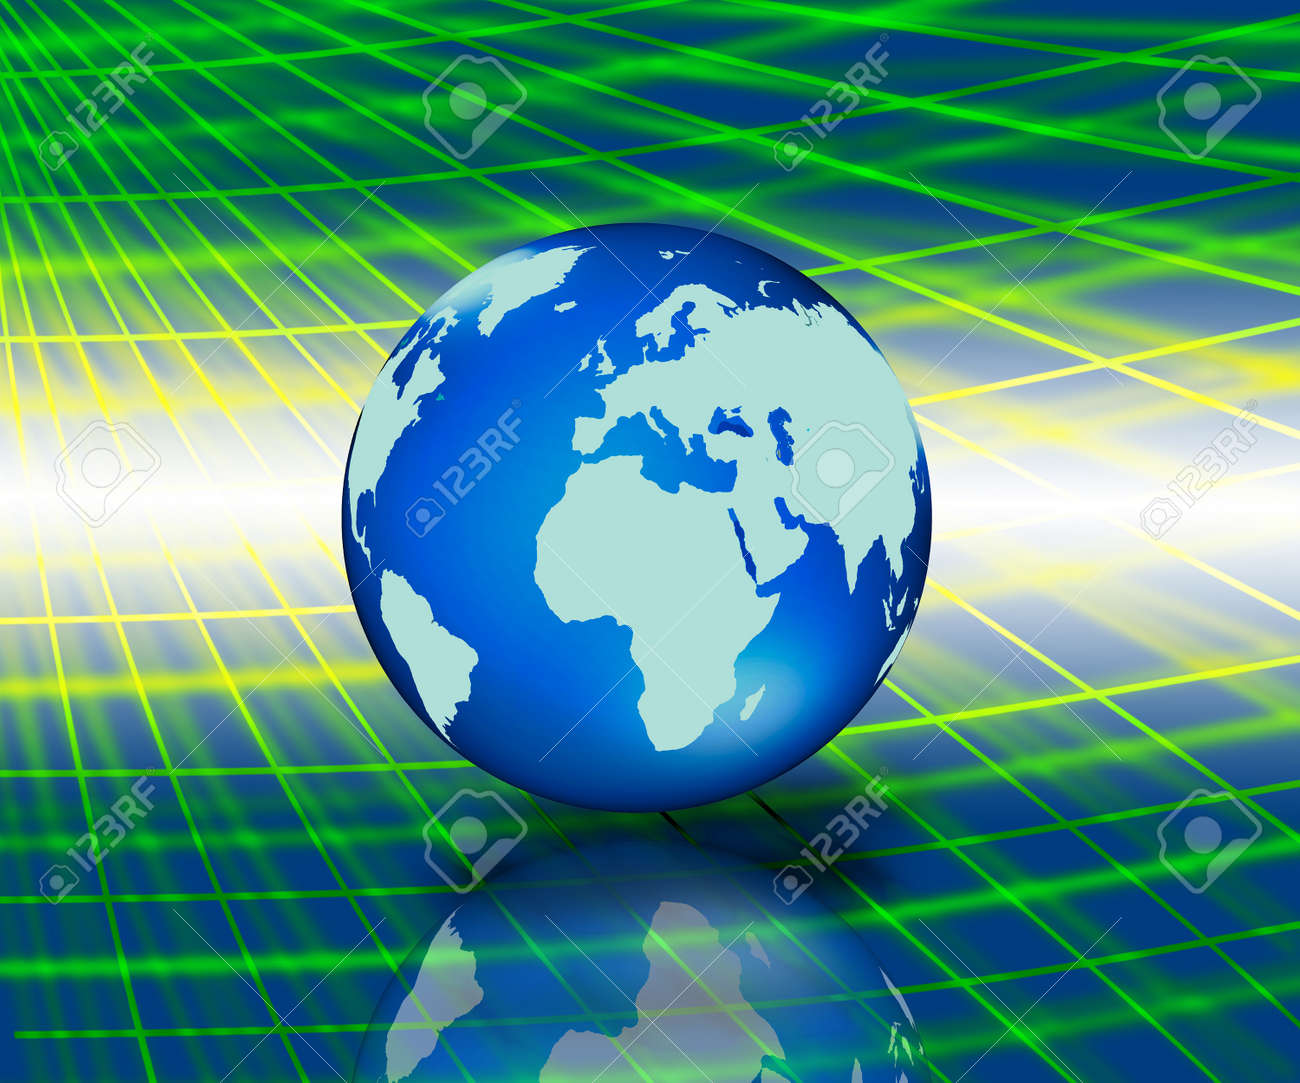 worldl map with blue shinyc abstrace network Stock Photo - 11108768